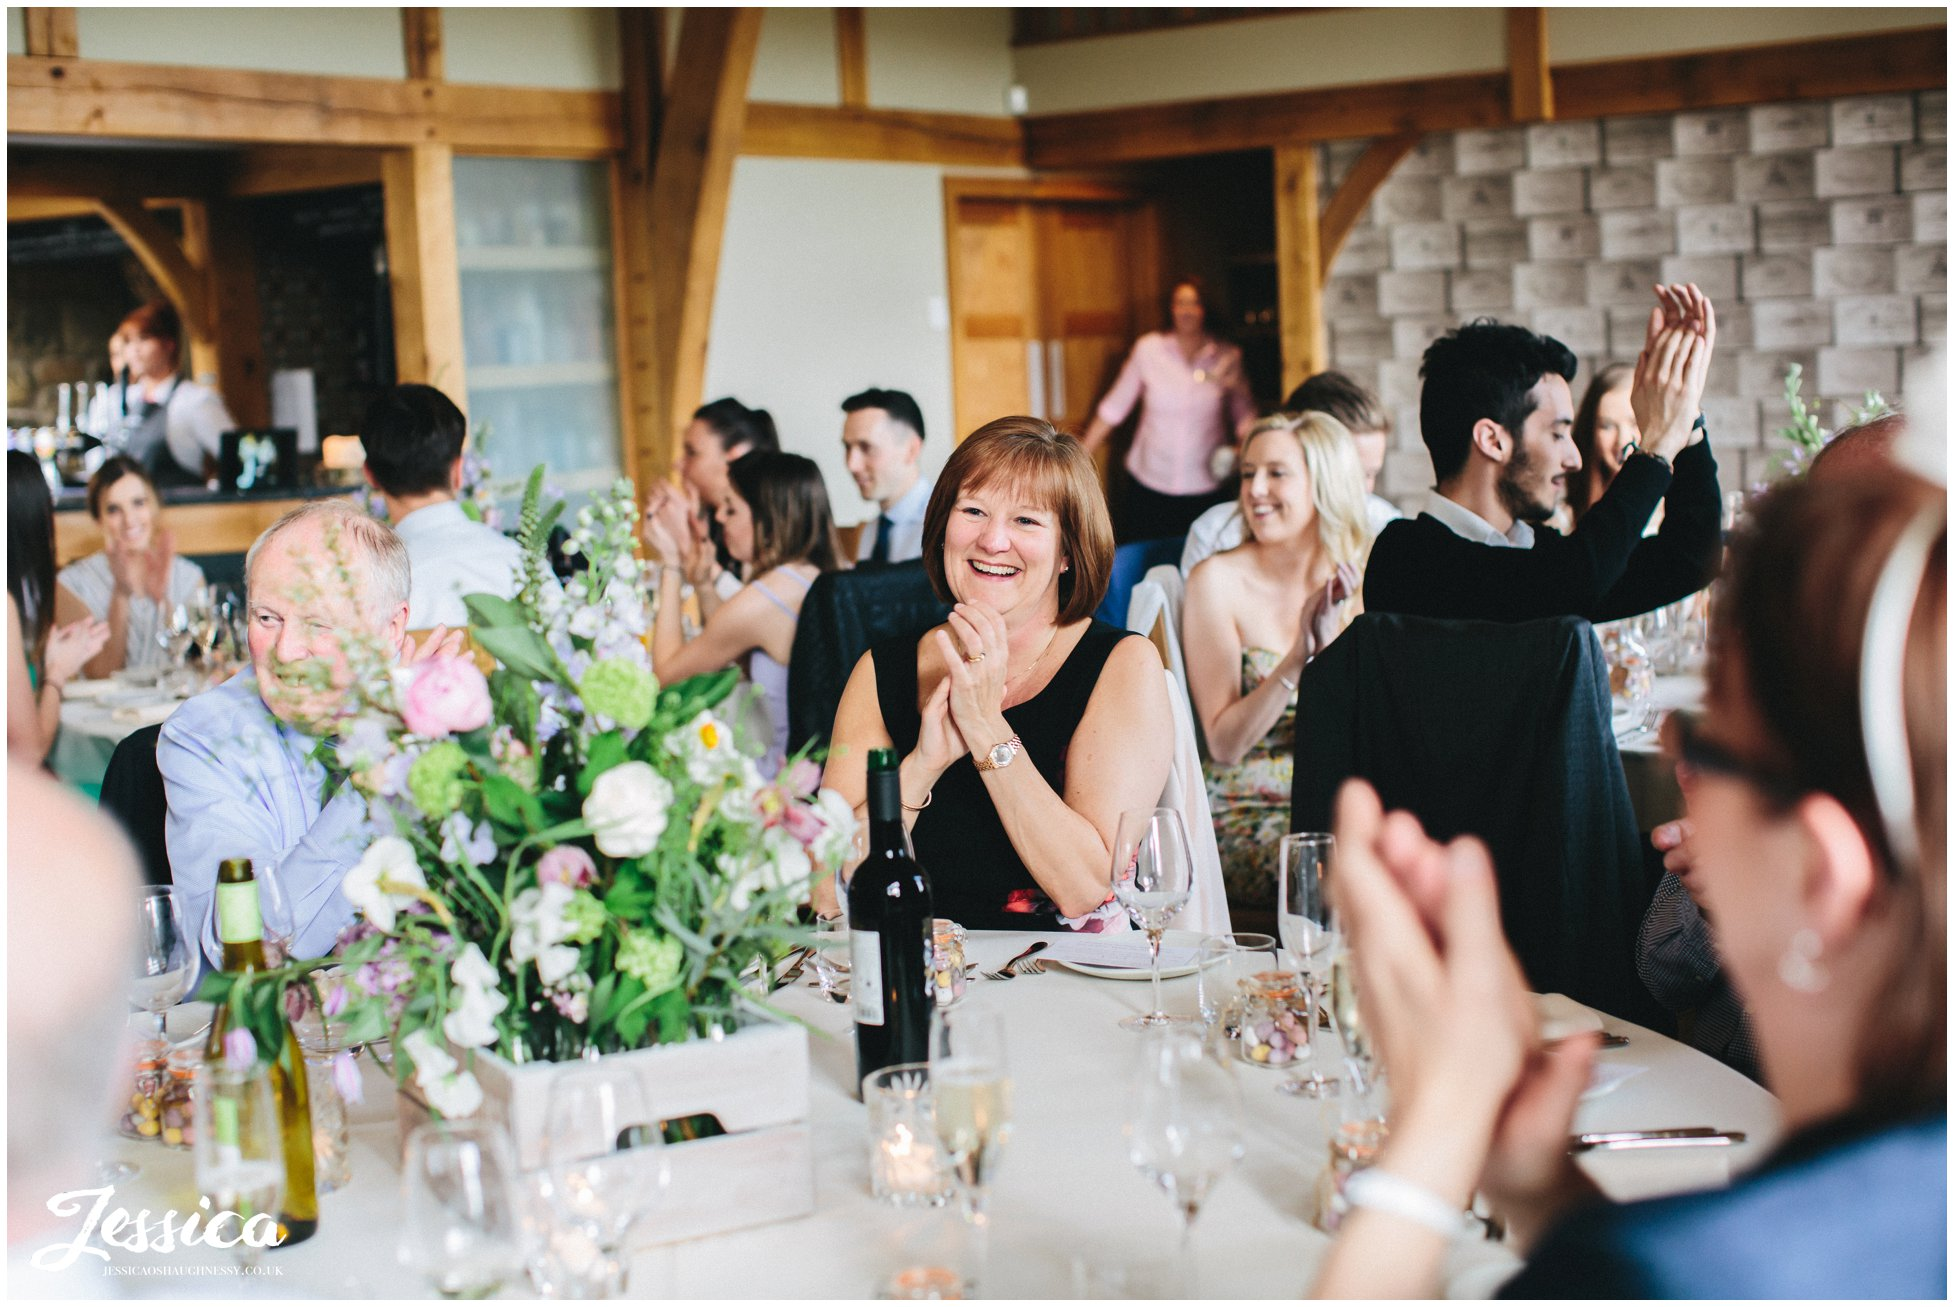 north wales wedding - guests clapping after the speeches end